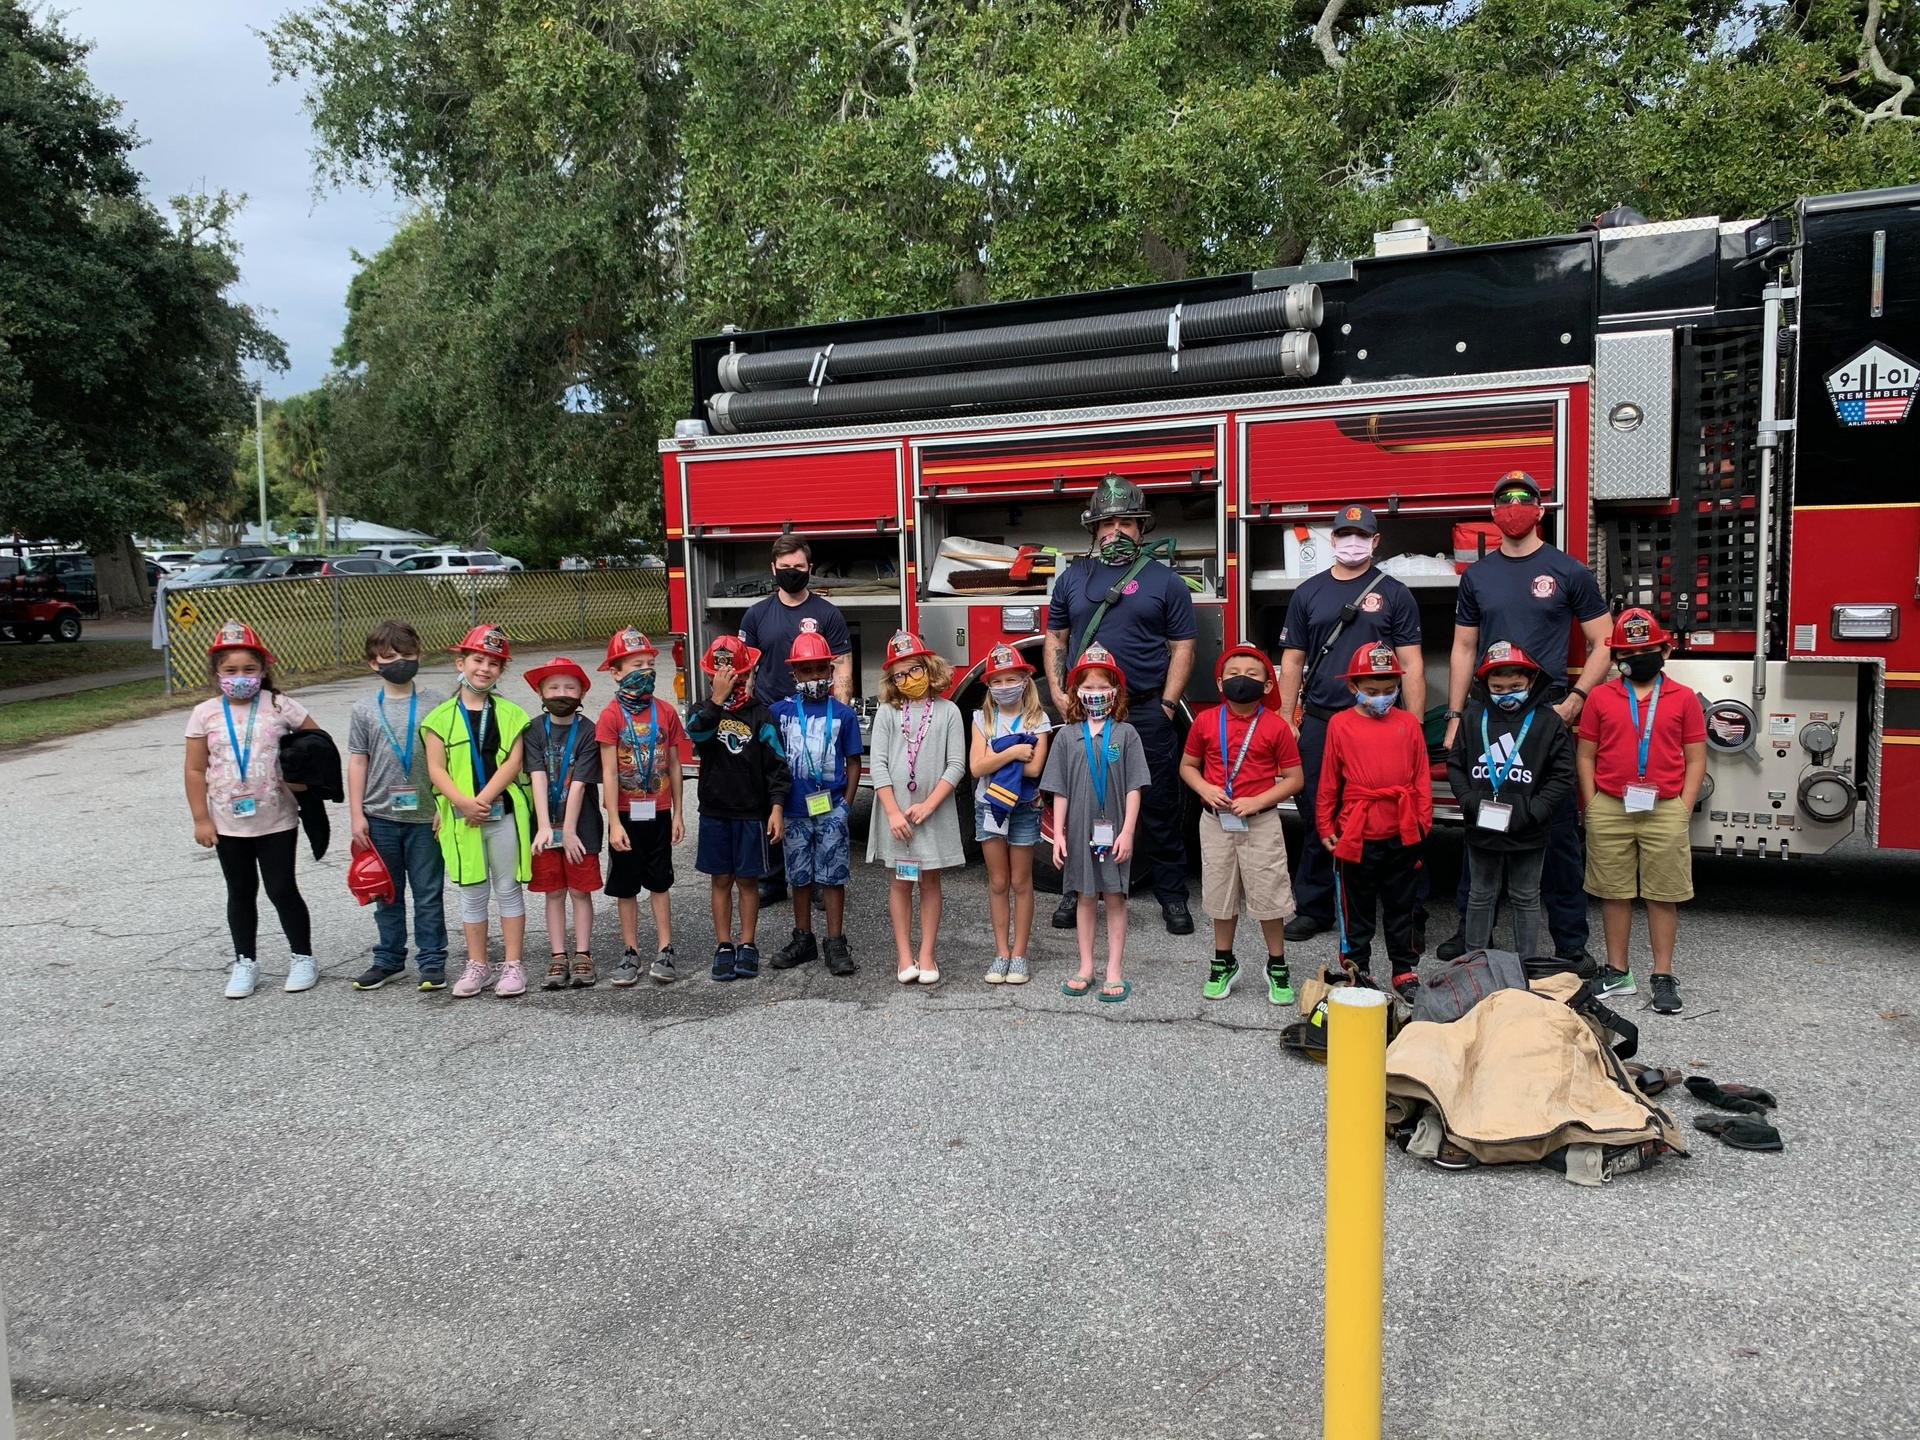 Firefighters at St. Simons Elementary School's 'Community Helpers' event.